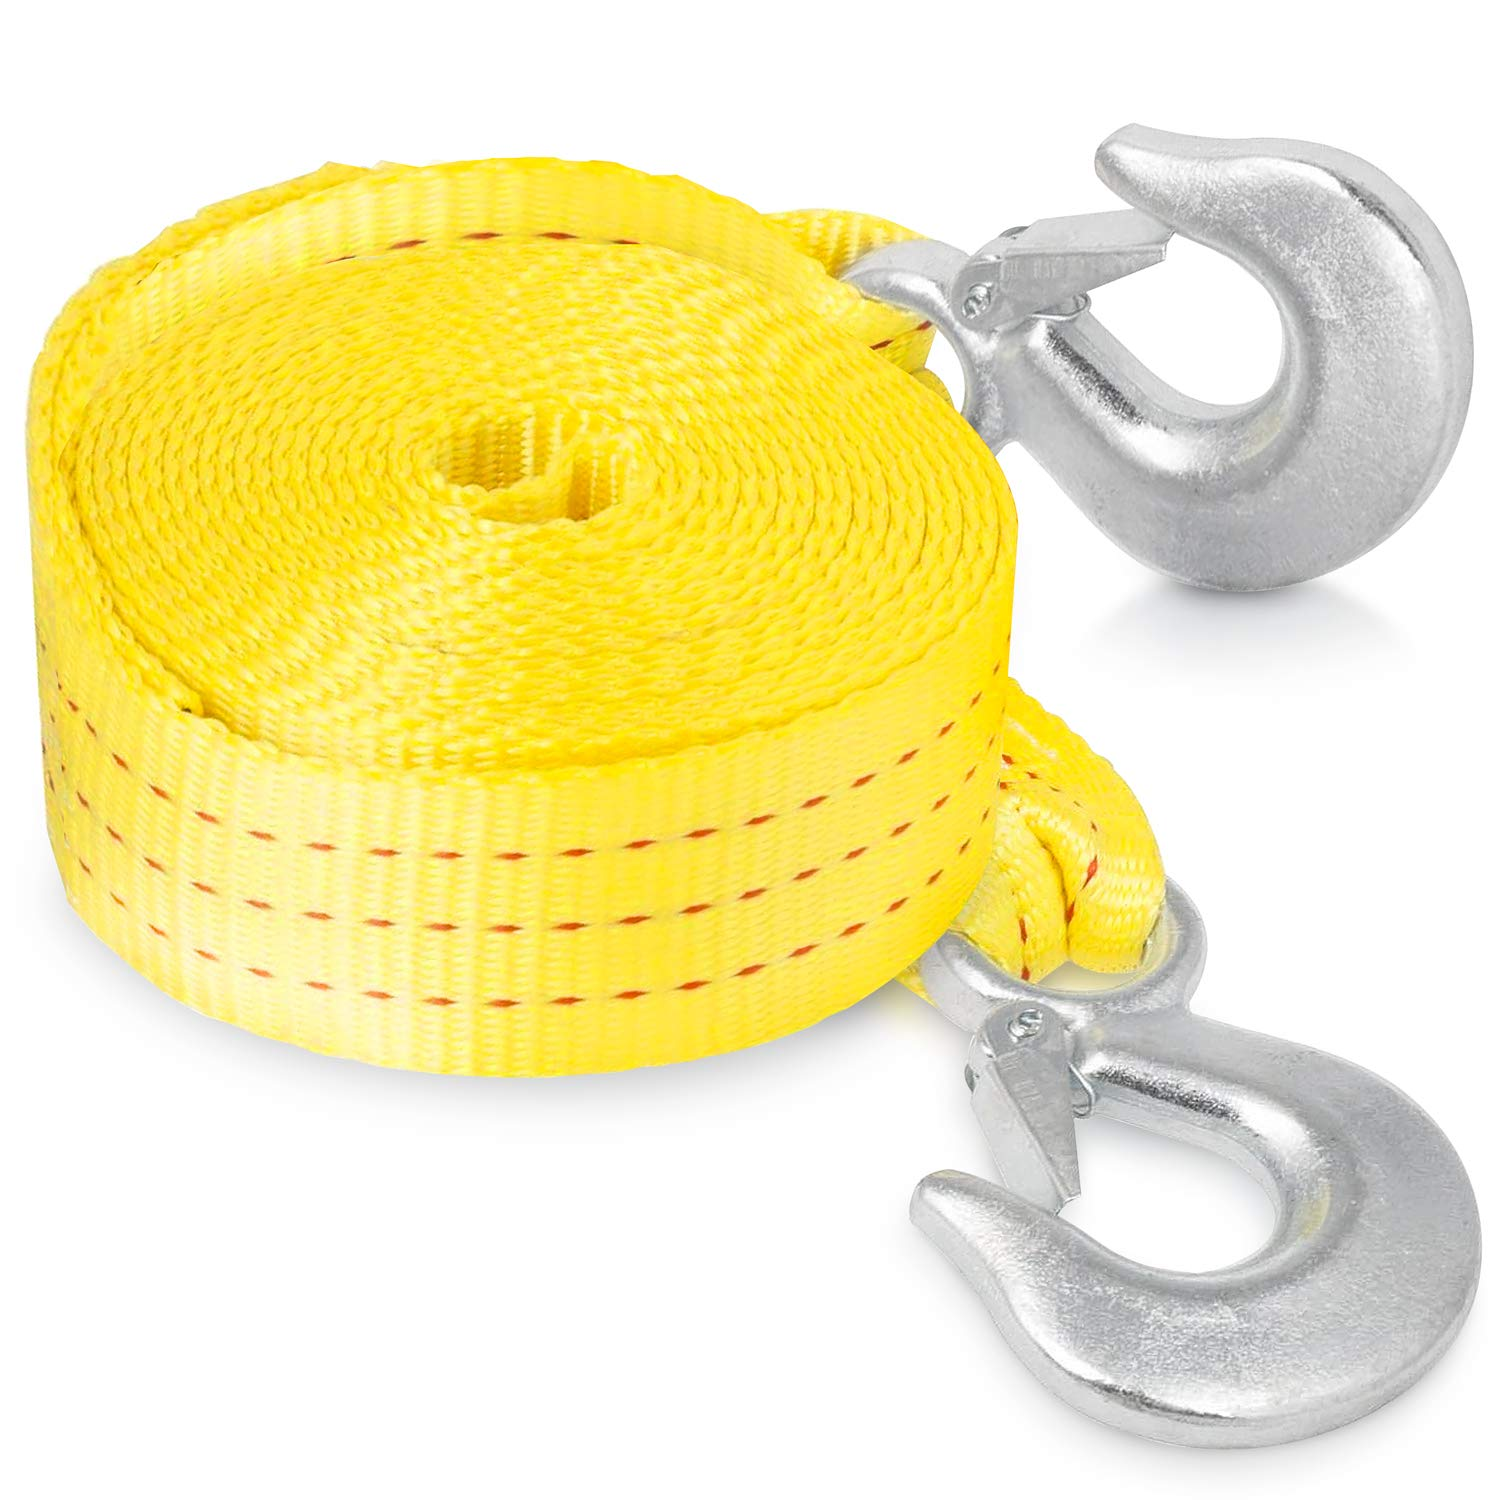 Tow Rope 1.65 X 13 Heavy Duty Strap with Hooks Nylon 5 Ton Polyester 11,000lb Towing Recovery Tow Strap